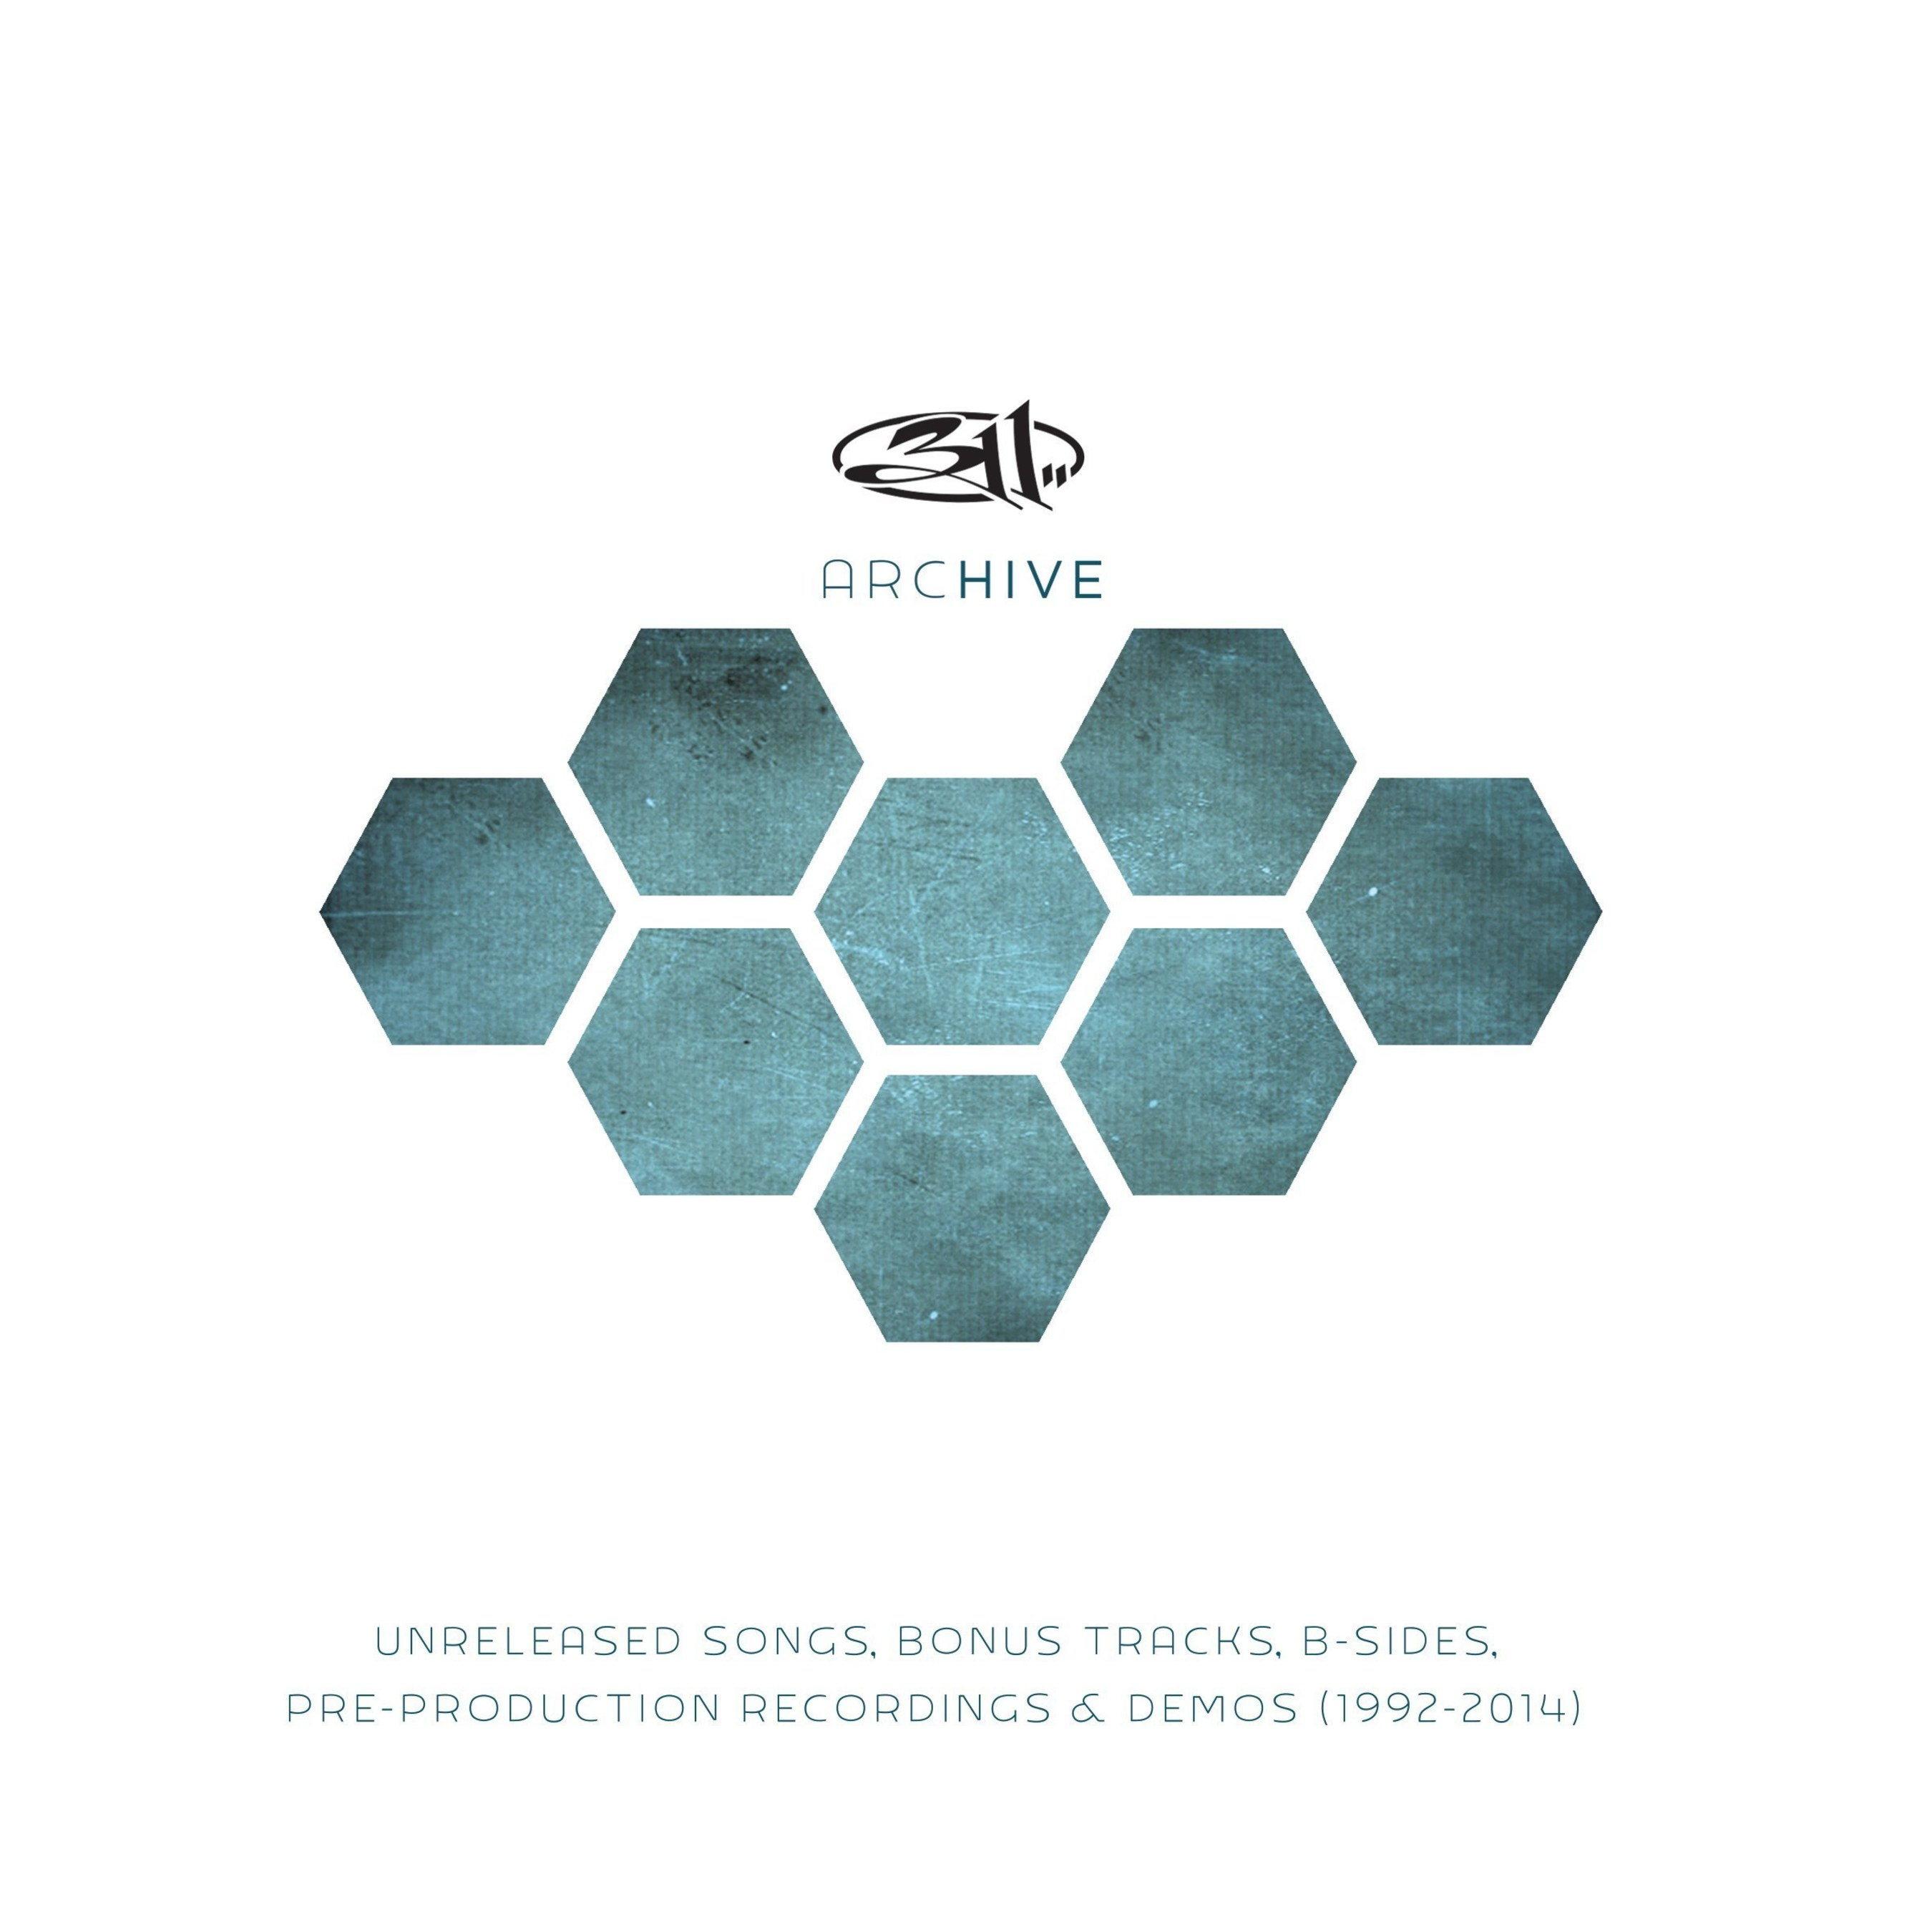 """Legendary alternative rock band 311 will celebrate its milestone 25th year with a career-spanning Volcano Entertainment/Legacy Recordings 4-CD box set  """"311 - ARCHIVE"""", available everywhere on June 30th"""